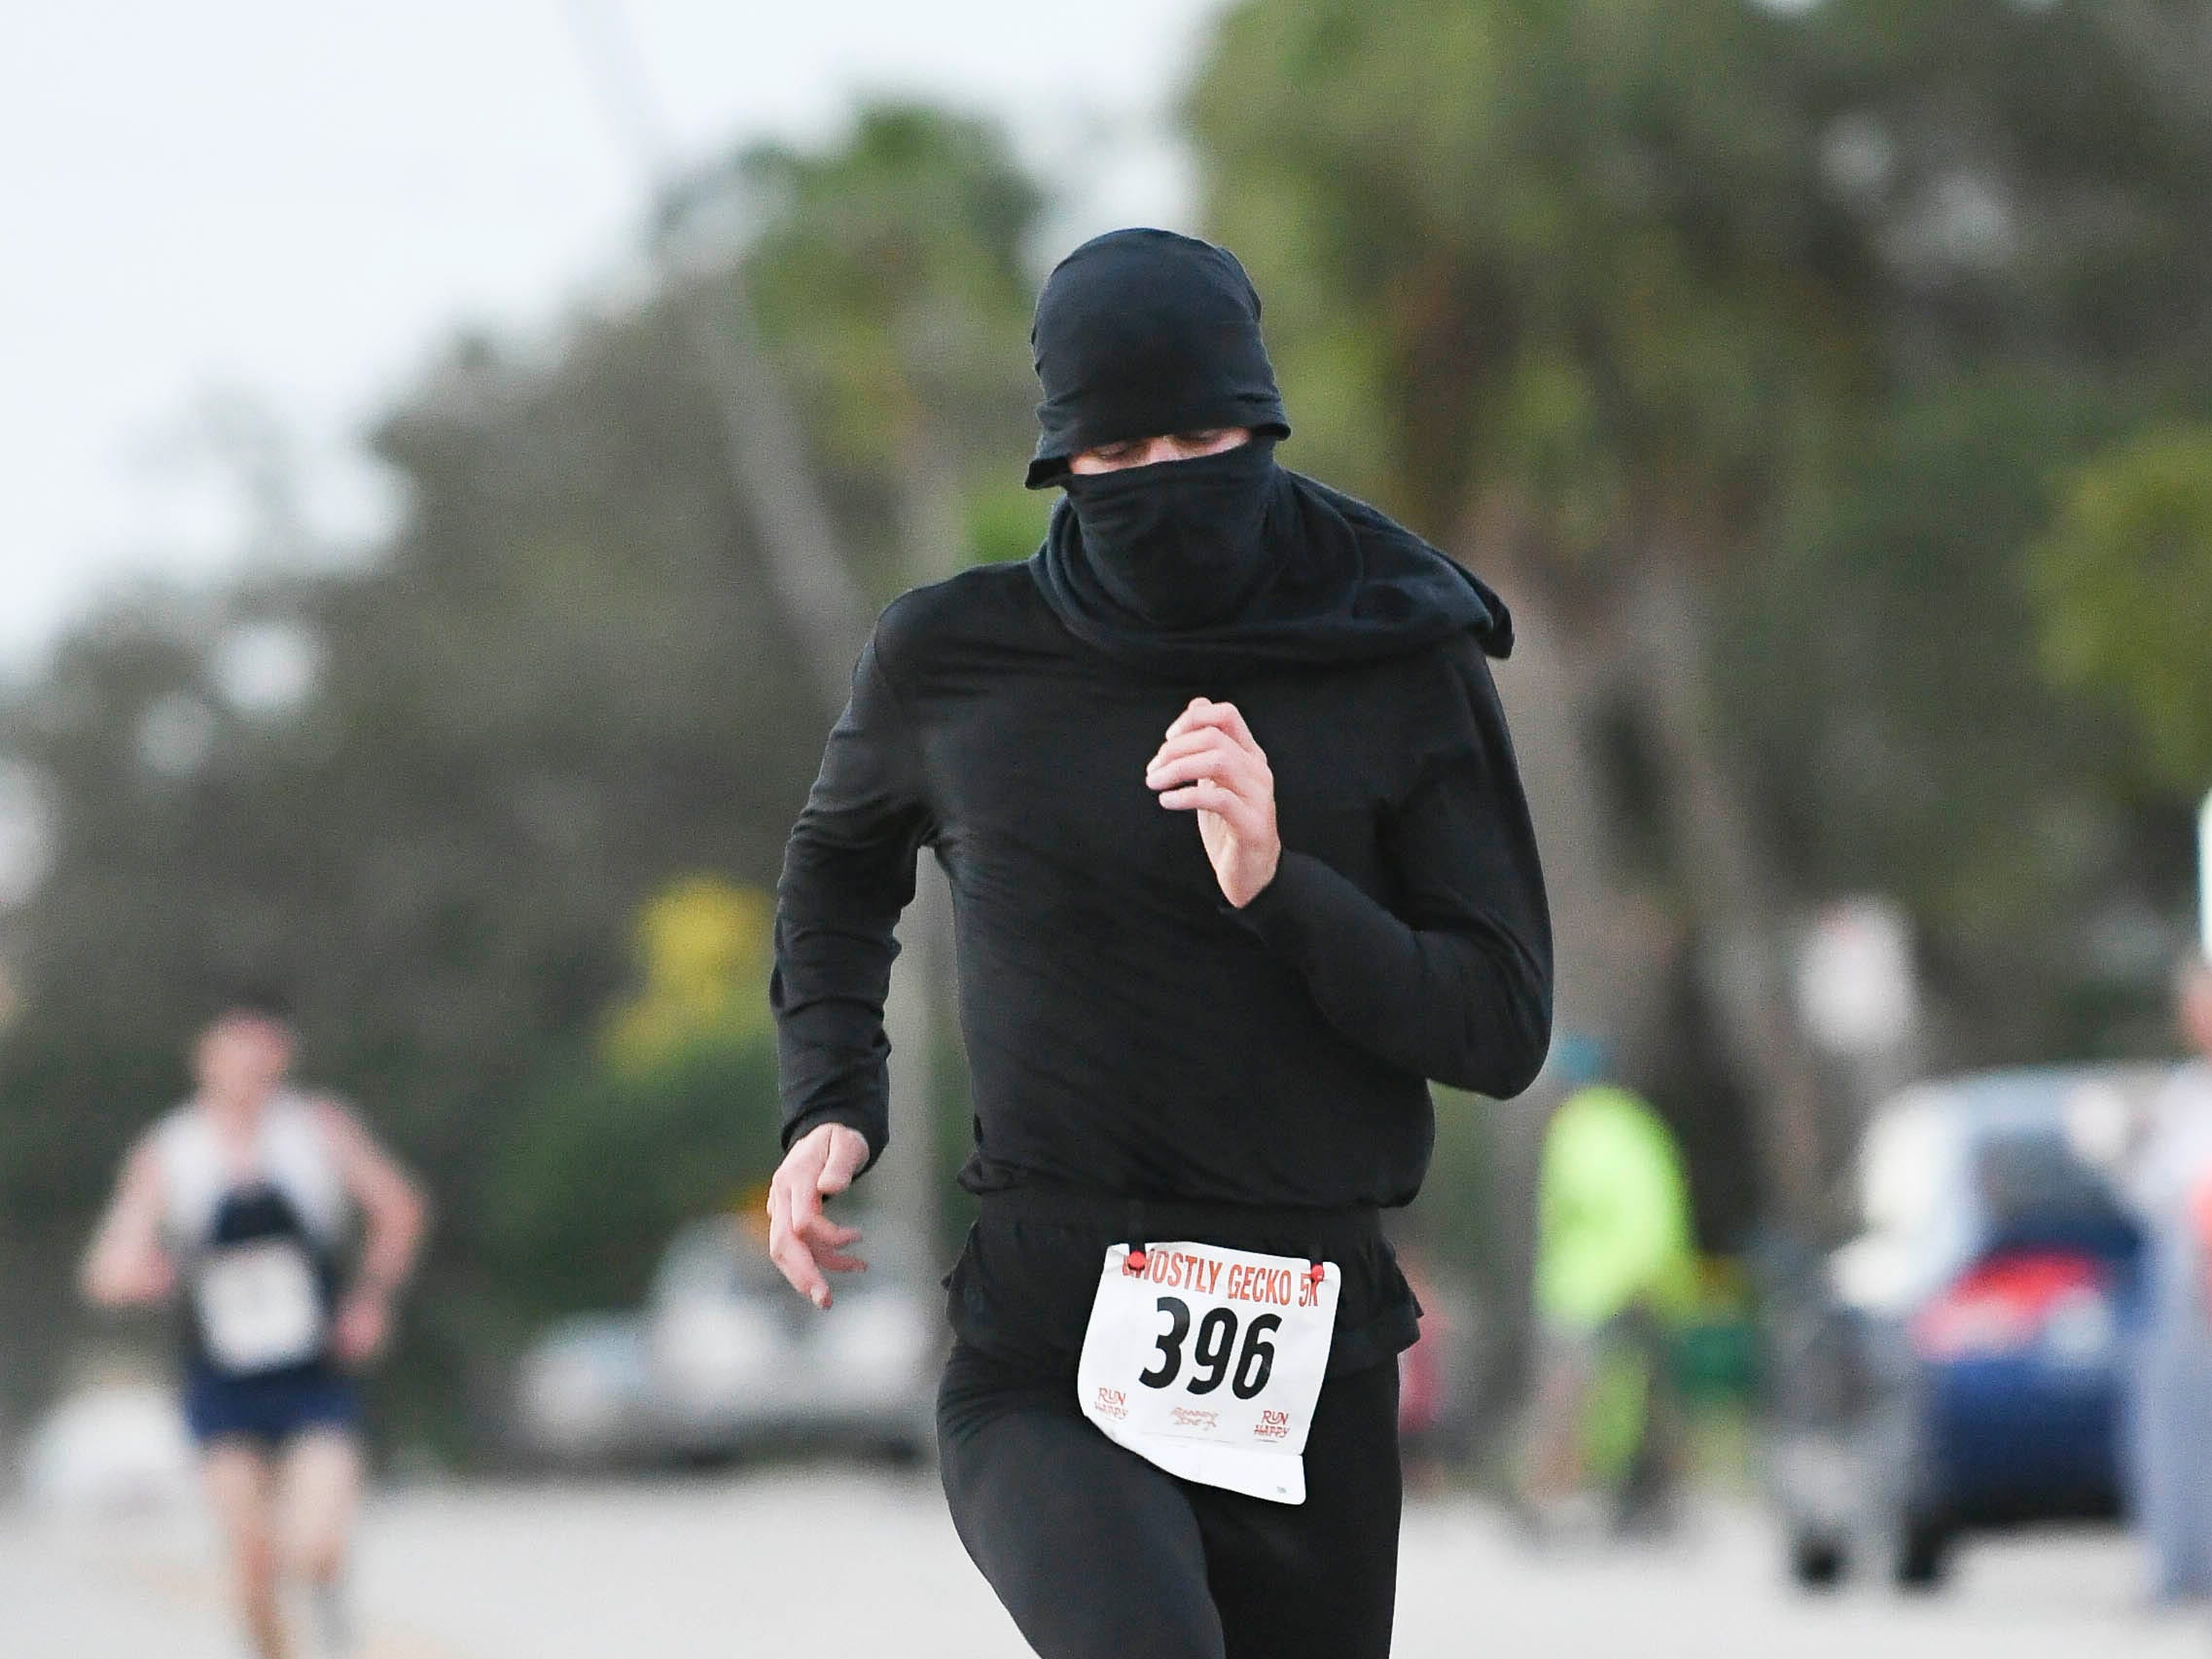 Was the first male finisher in the Ghostly Gecko 5K in the Eau Gallie Art District.